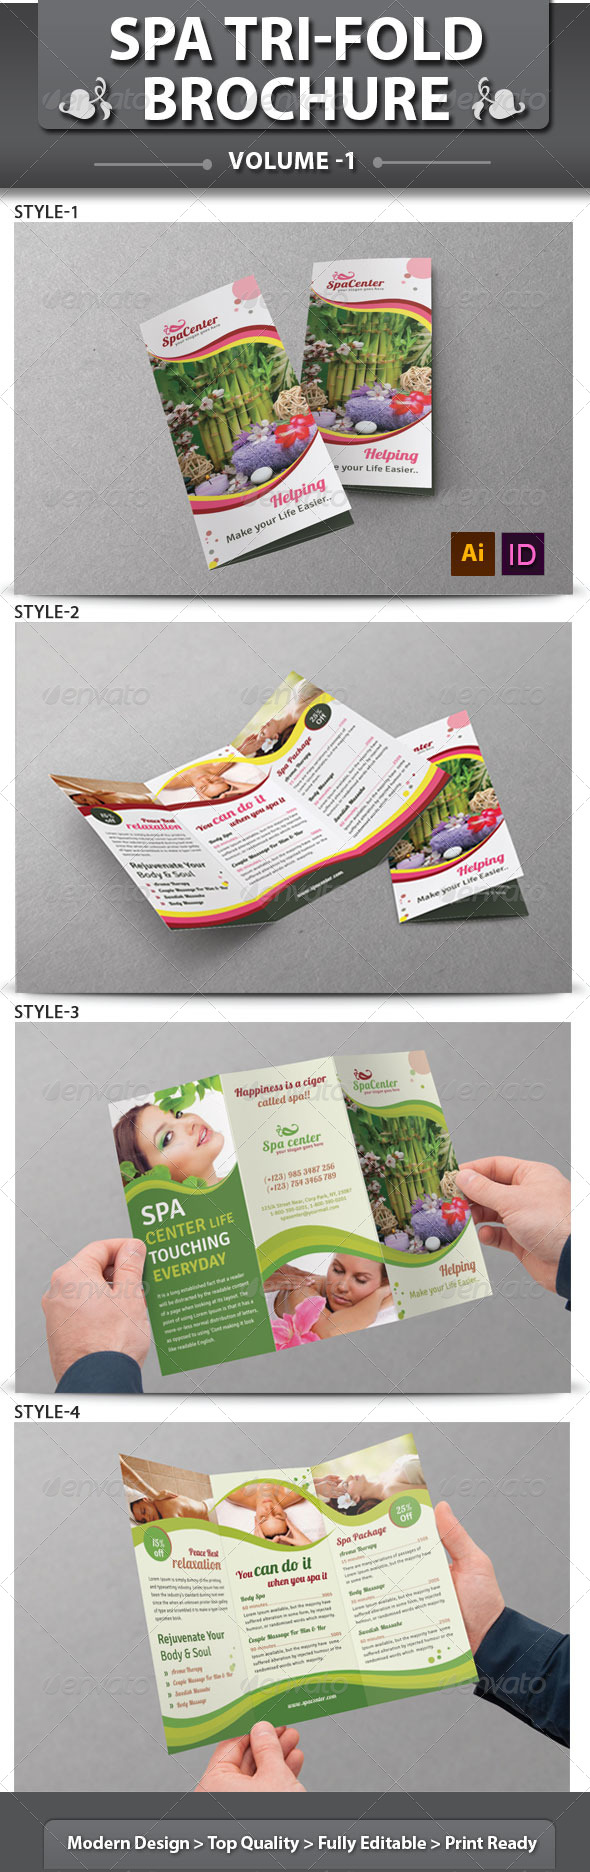 Spa TriFold Brochure v1 - Corporate Brochures